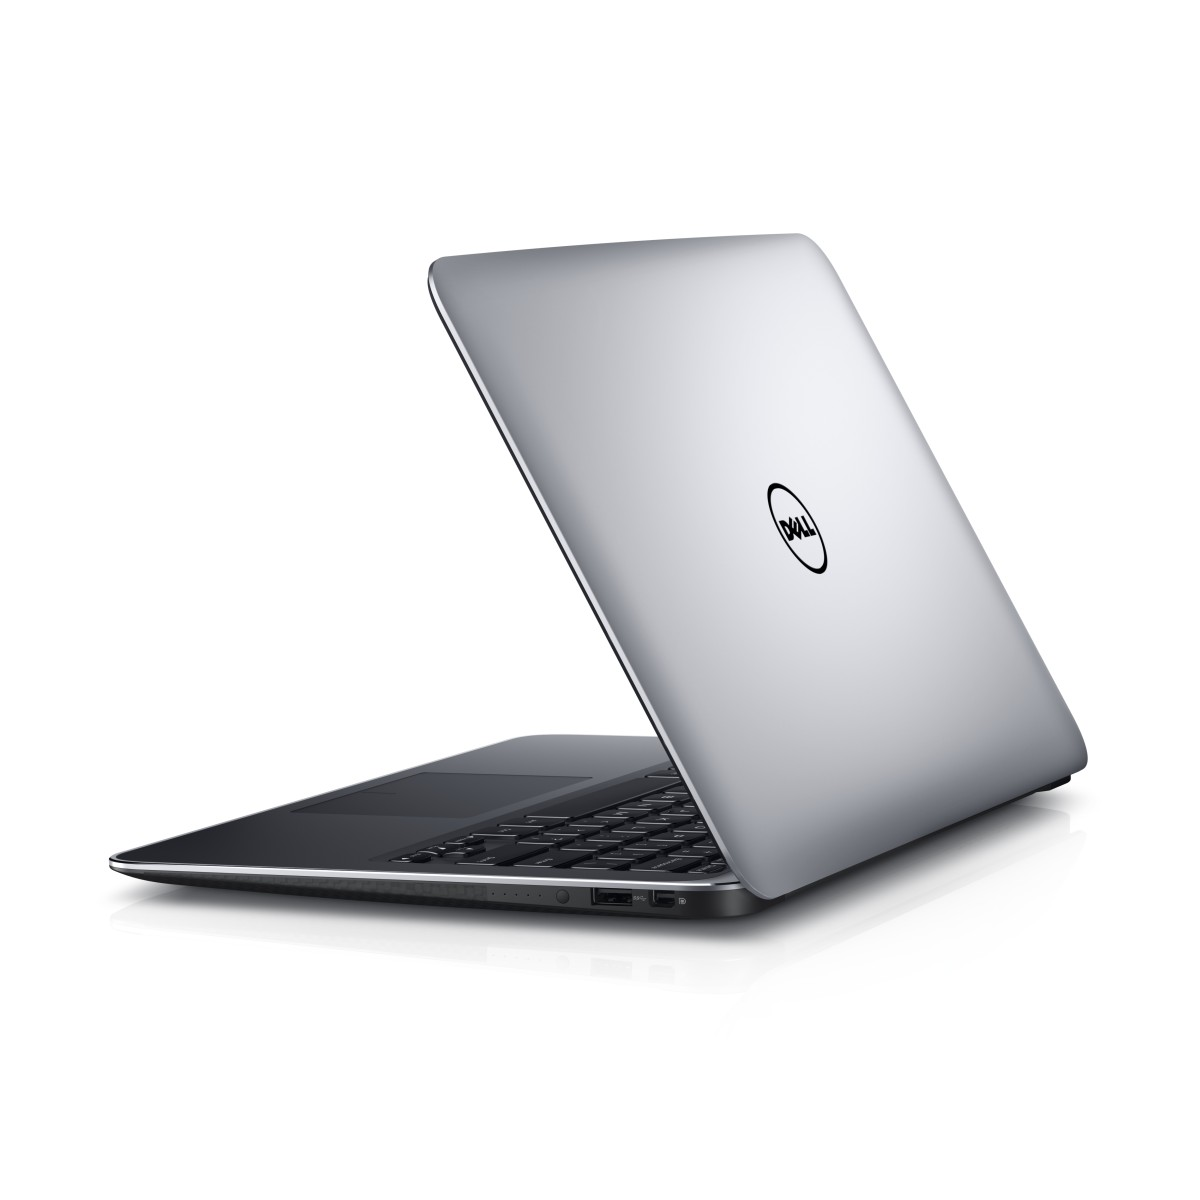 dell xps 13 ultrabook manual free owners manual u2022 rh wordworksbysea com dell xps 8000 user manual dell xps 13 user manual